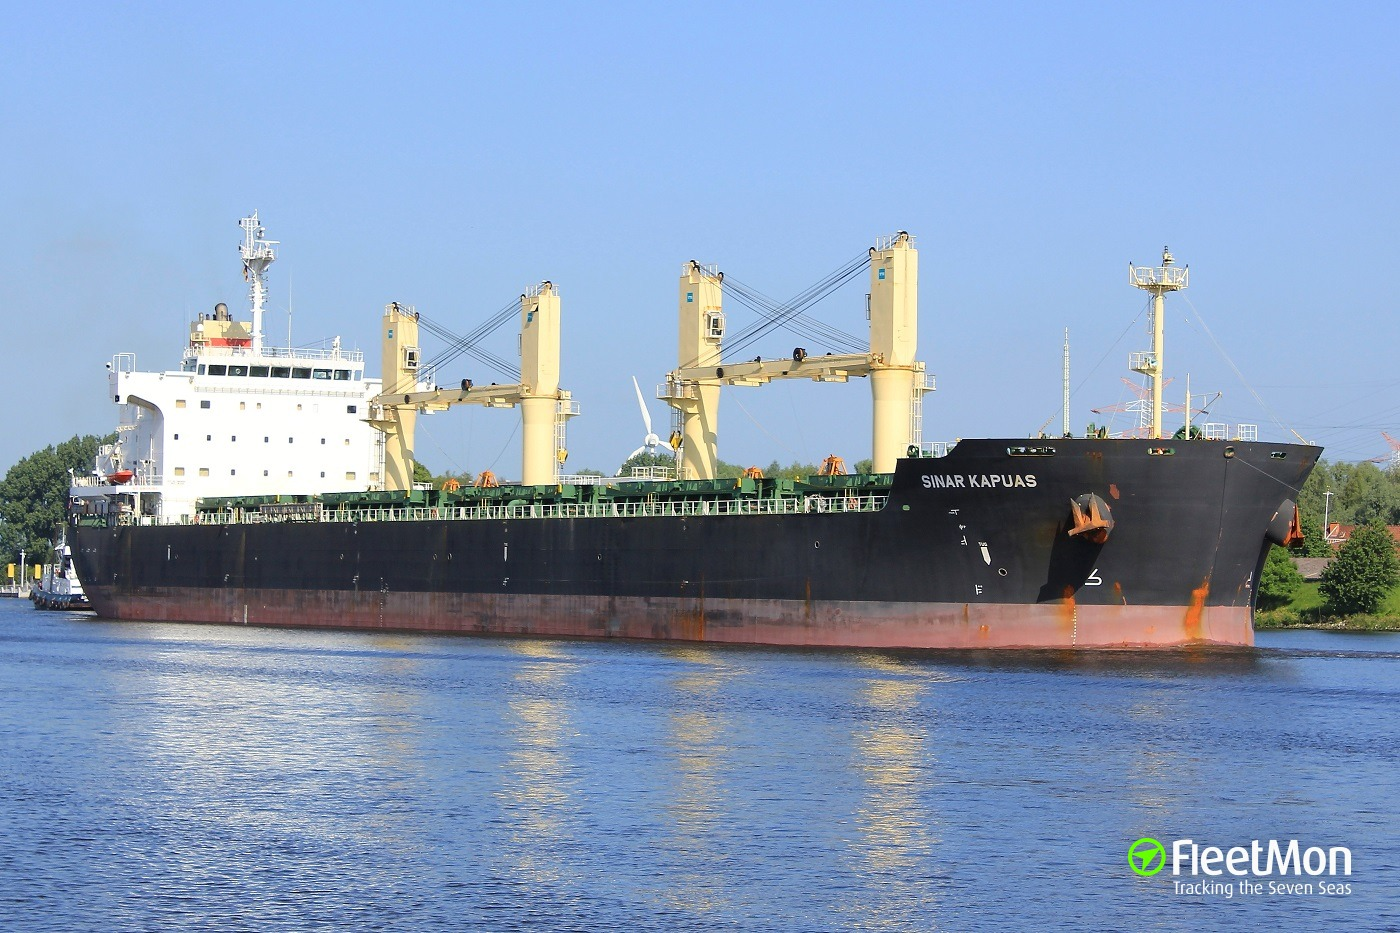 Aframax Alyarmouk vs. bulk carrier Sinar Kapuas, Singapore. 4500 tons of crude oil spilled.